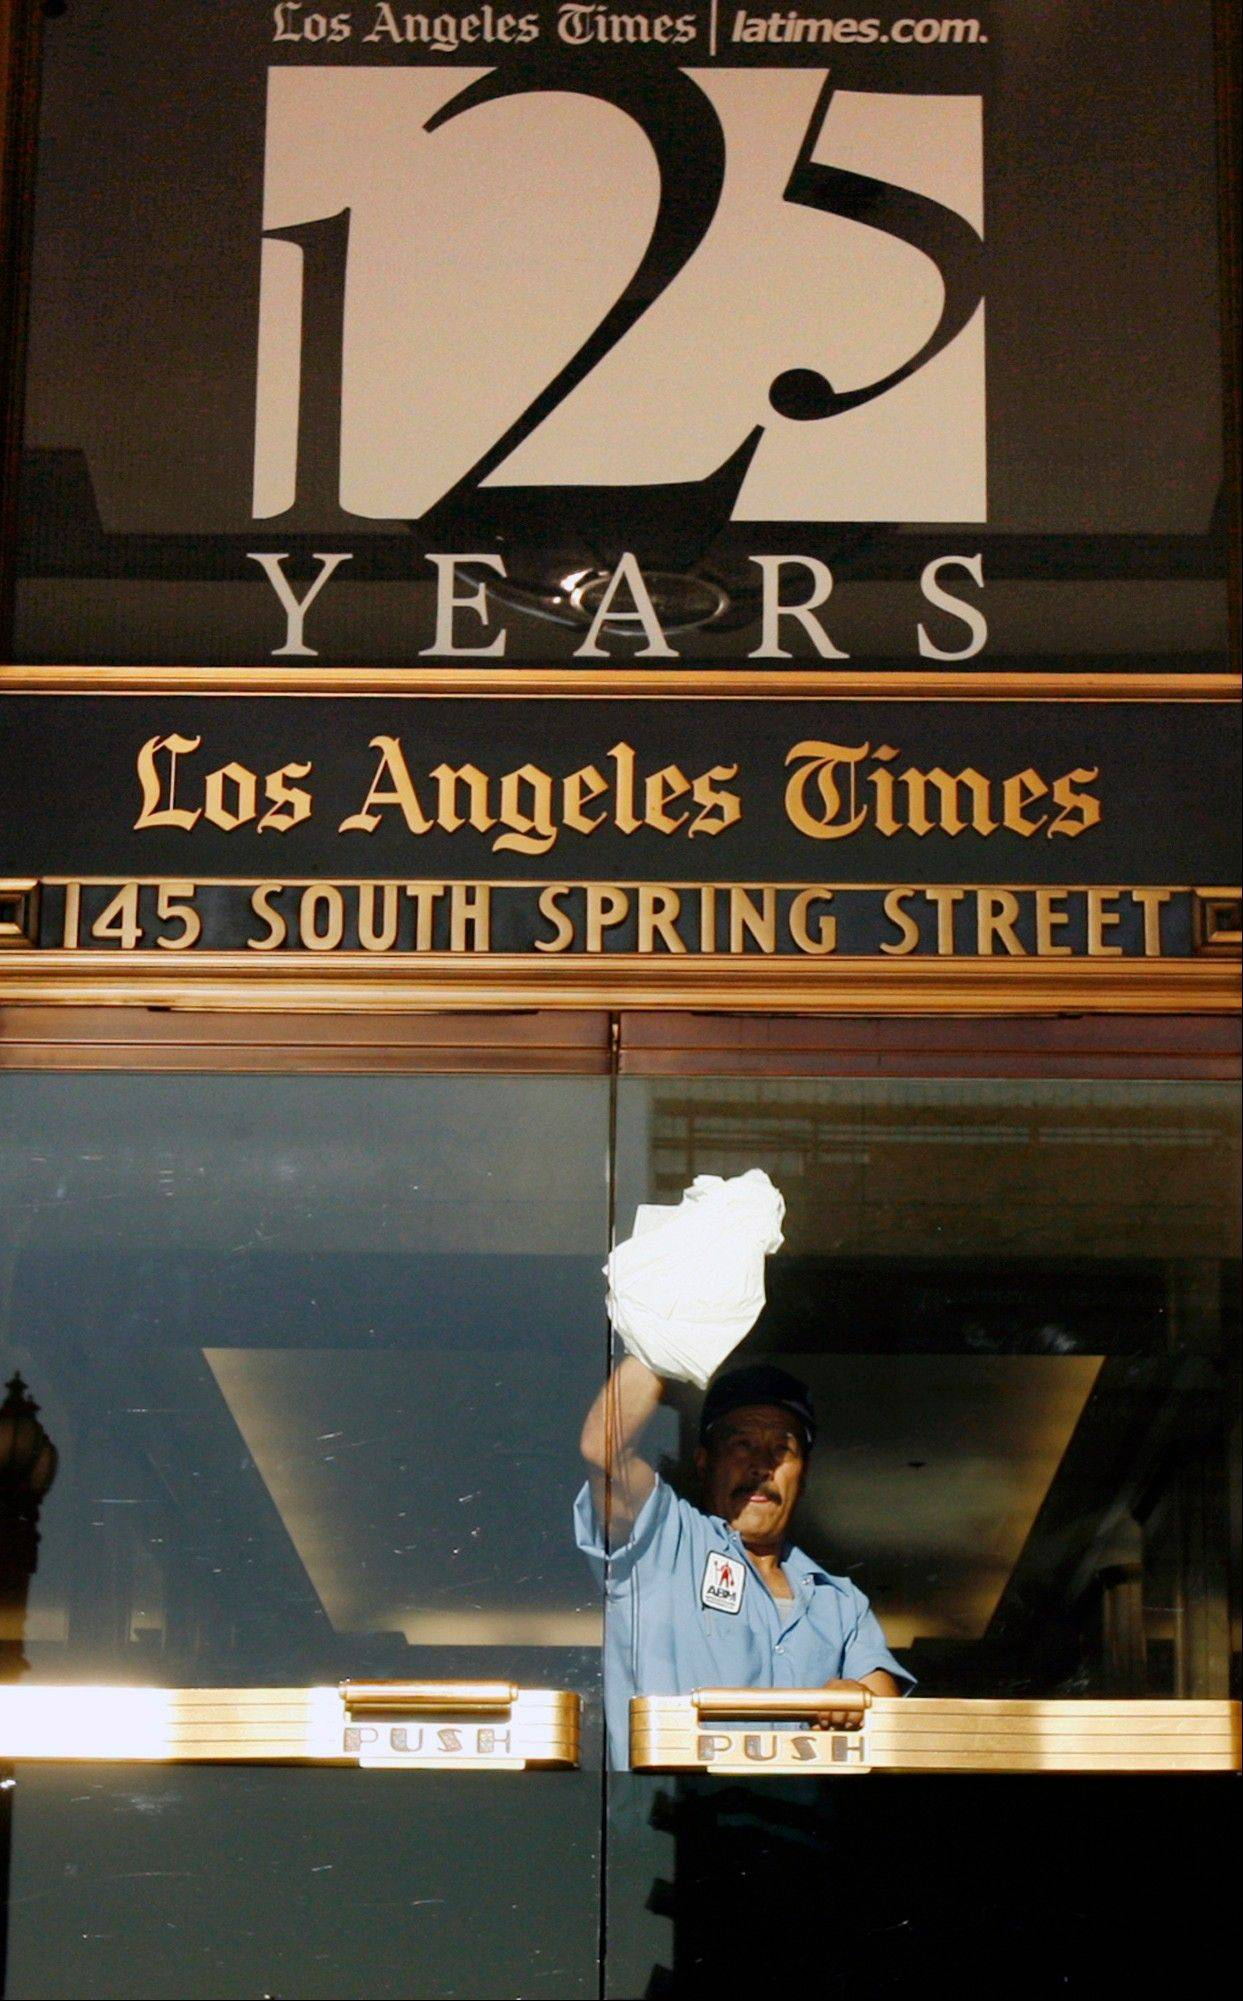 Associated Press/Nov. 16, 2006A worker cleans an entrance to the Los Angeles Times building in Los Angeles. Federal authorities allege that Matthew Keys provided hackers with login information to access the Tribune Company's computer system in December 2010.